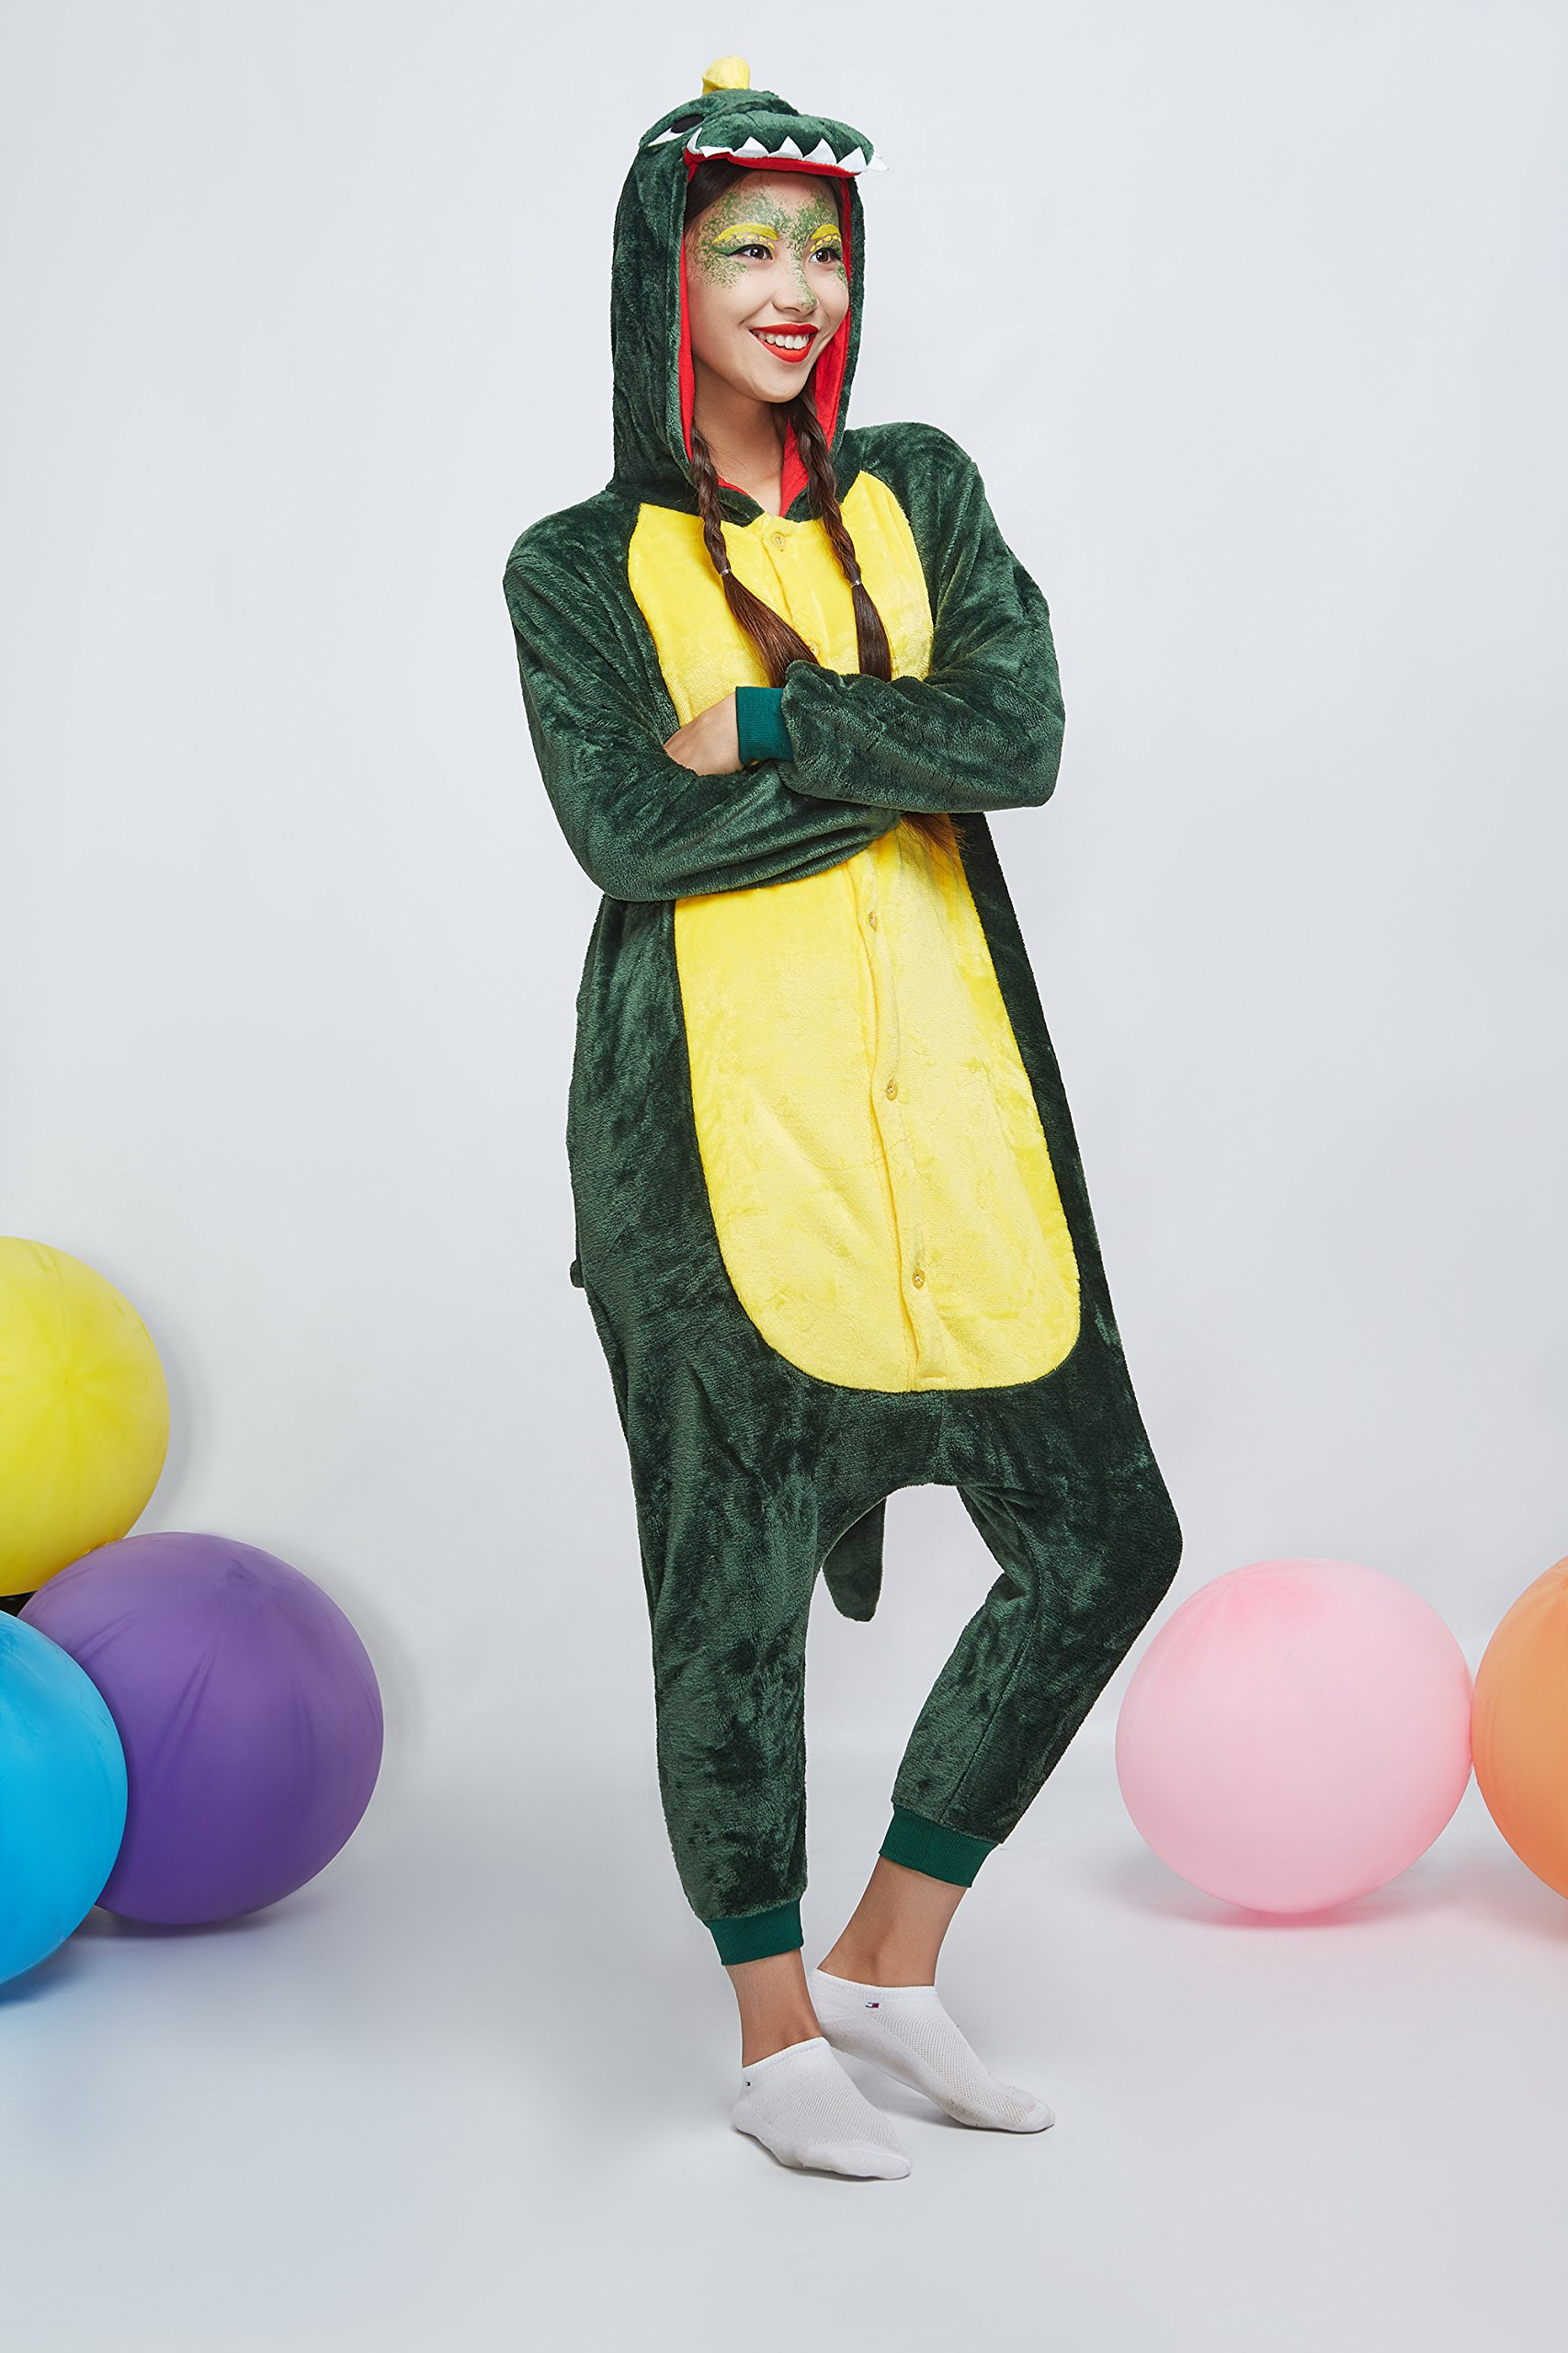 Adult Dragon Kigurumi Animal Onesie Pajamas Plush Onsie One Piece Cosplay Costume (Small, Green) by Nothing But Love (Image #5)